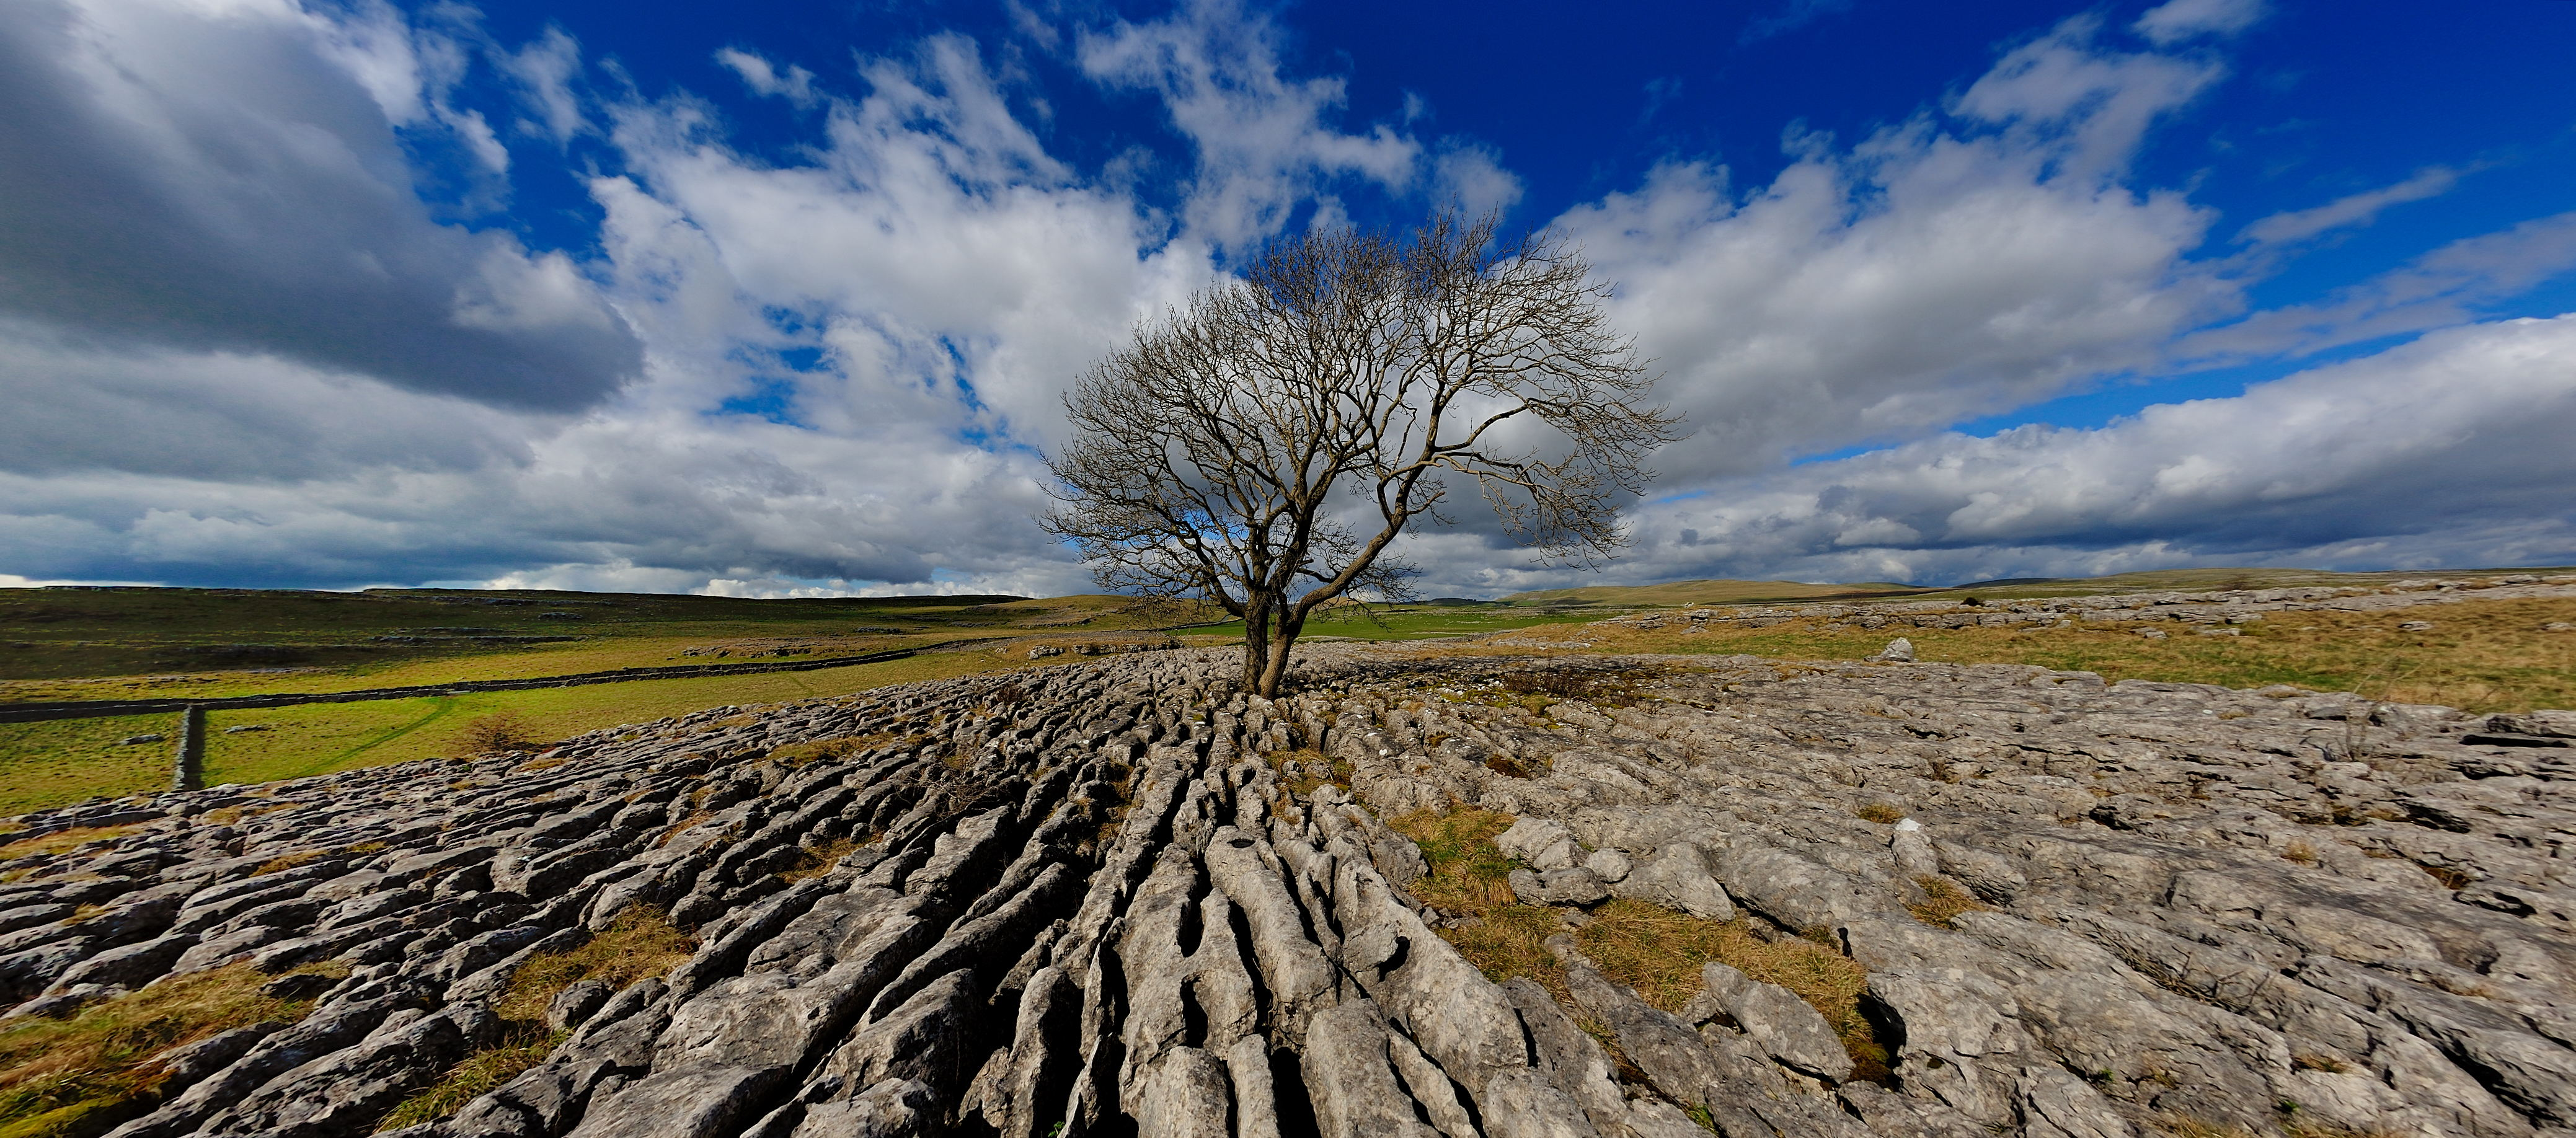 The Malham tree